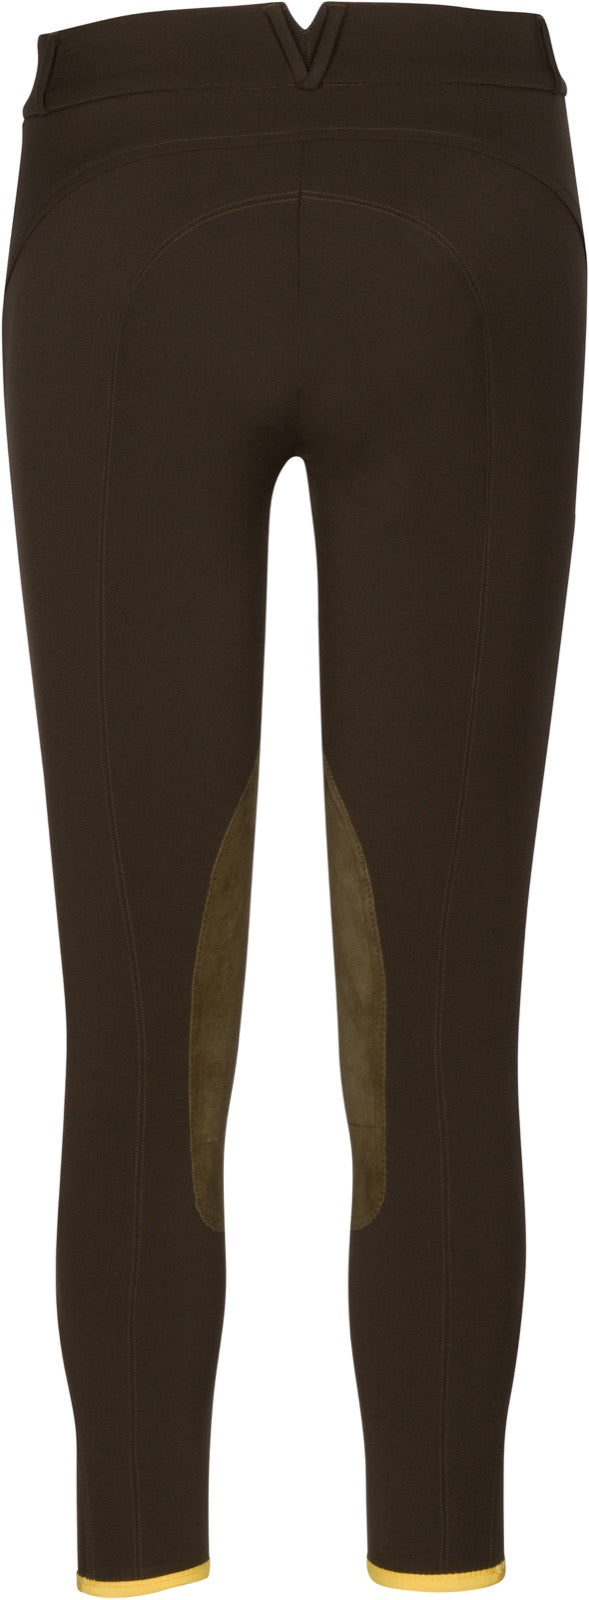 Callidae The C Breech in Moss - Women's 26